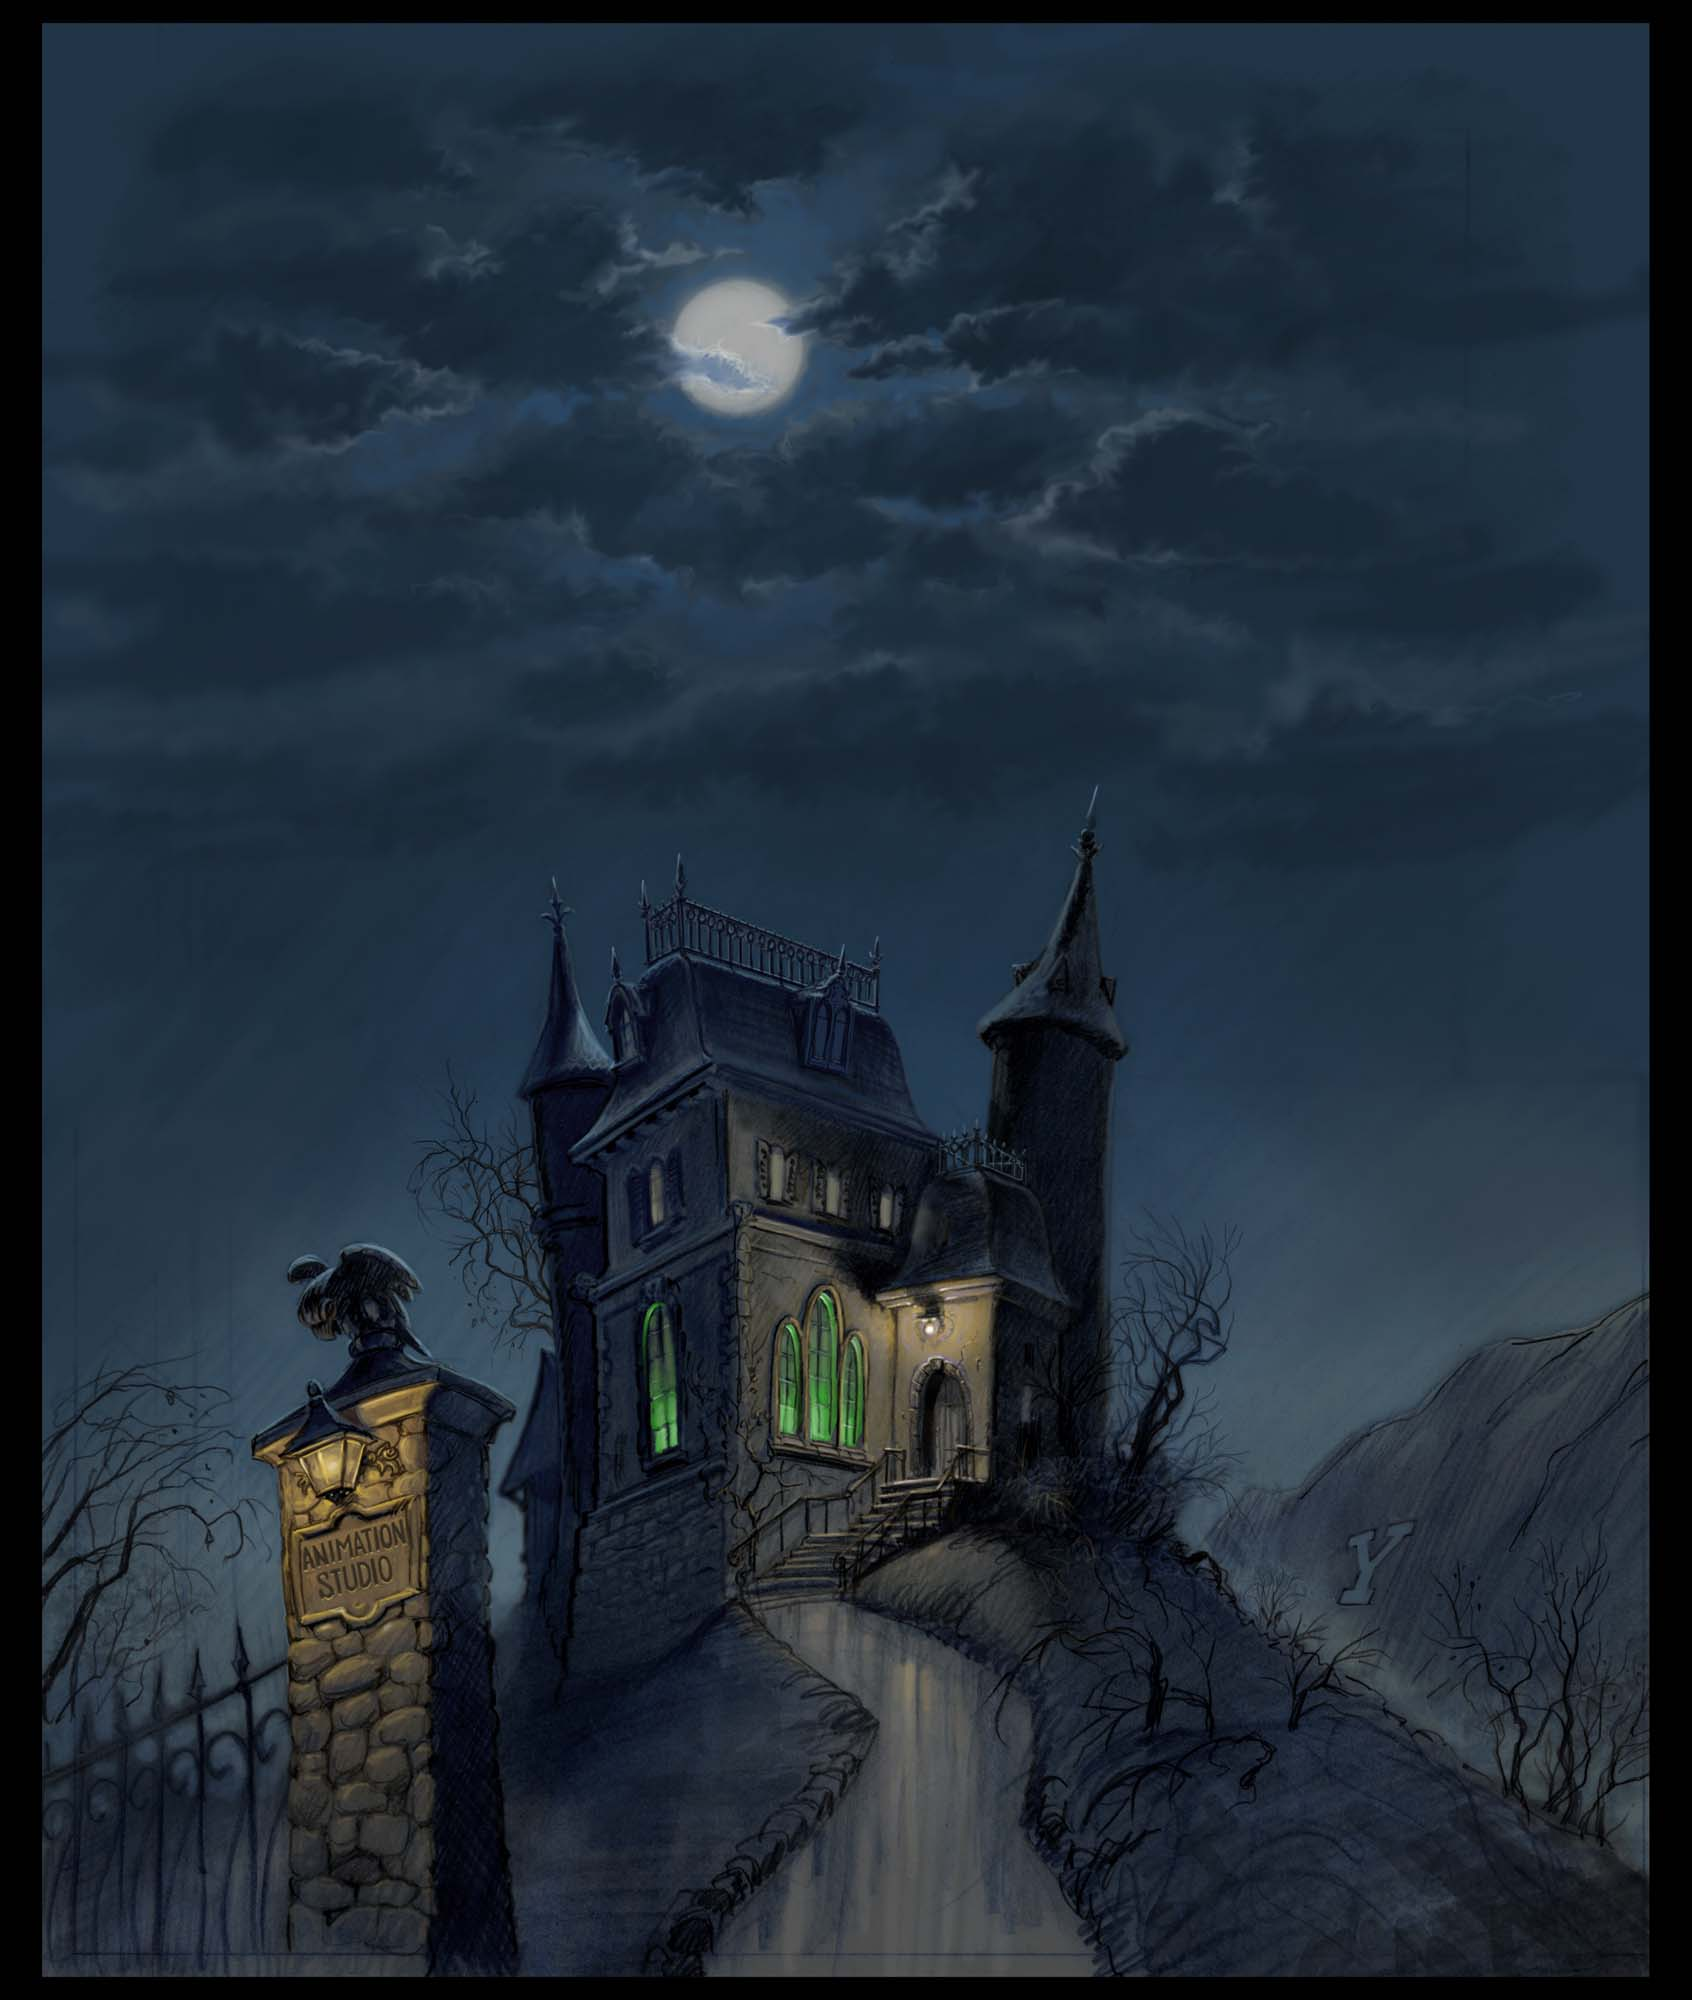 Halloween House Decorations: Animated Haunted House Wallpaper